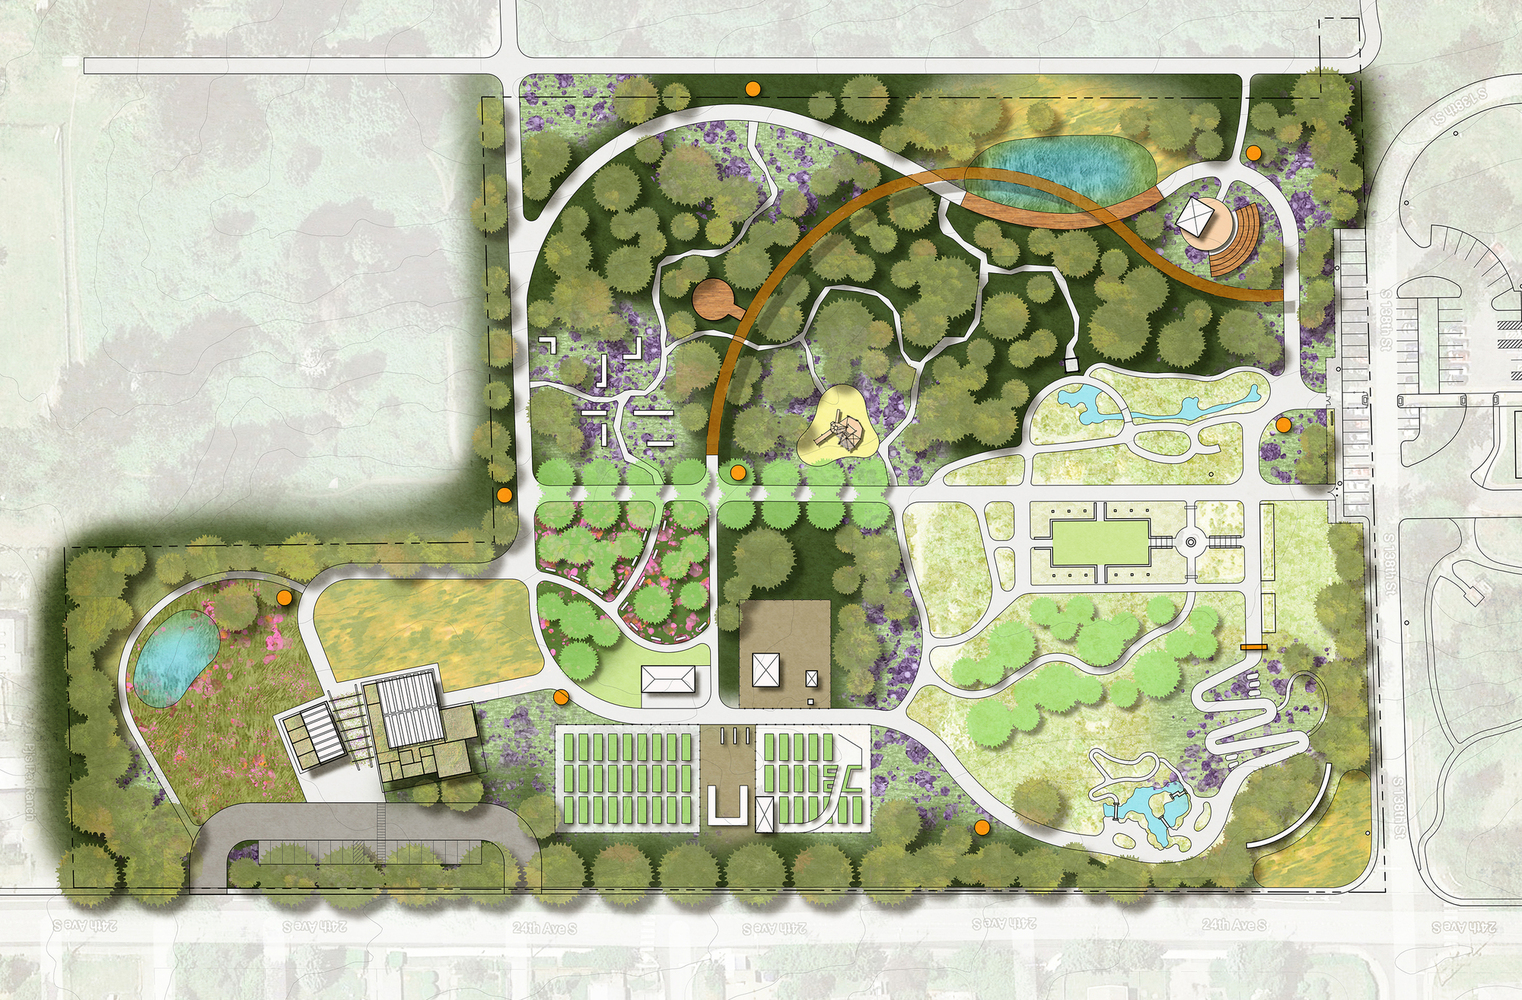 Highline Botanical Garden Site Plan